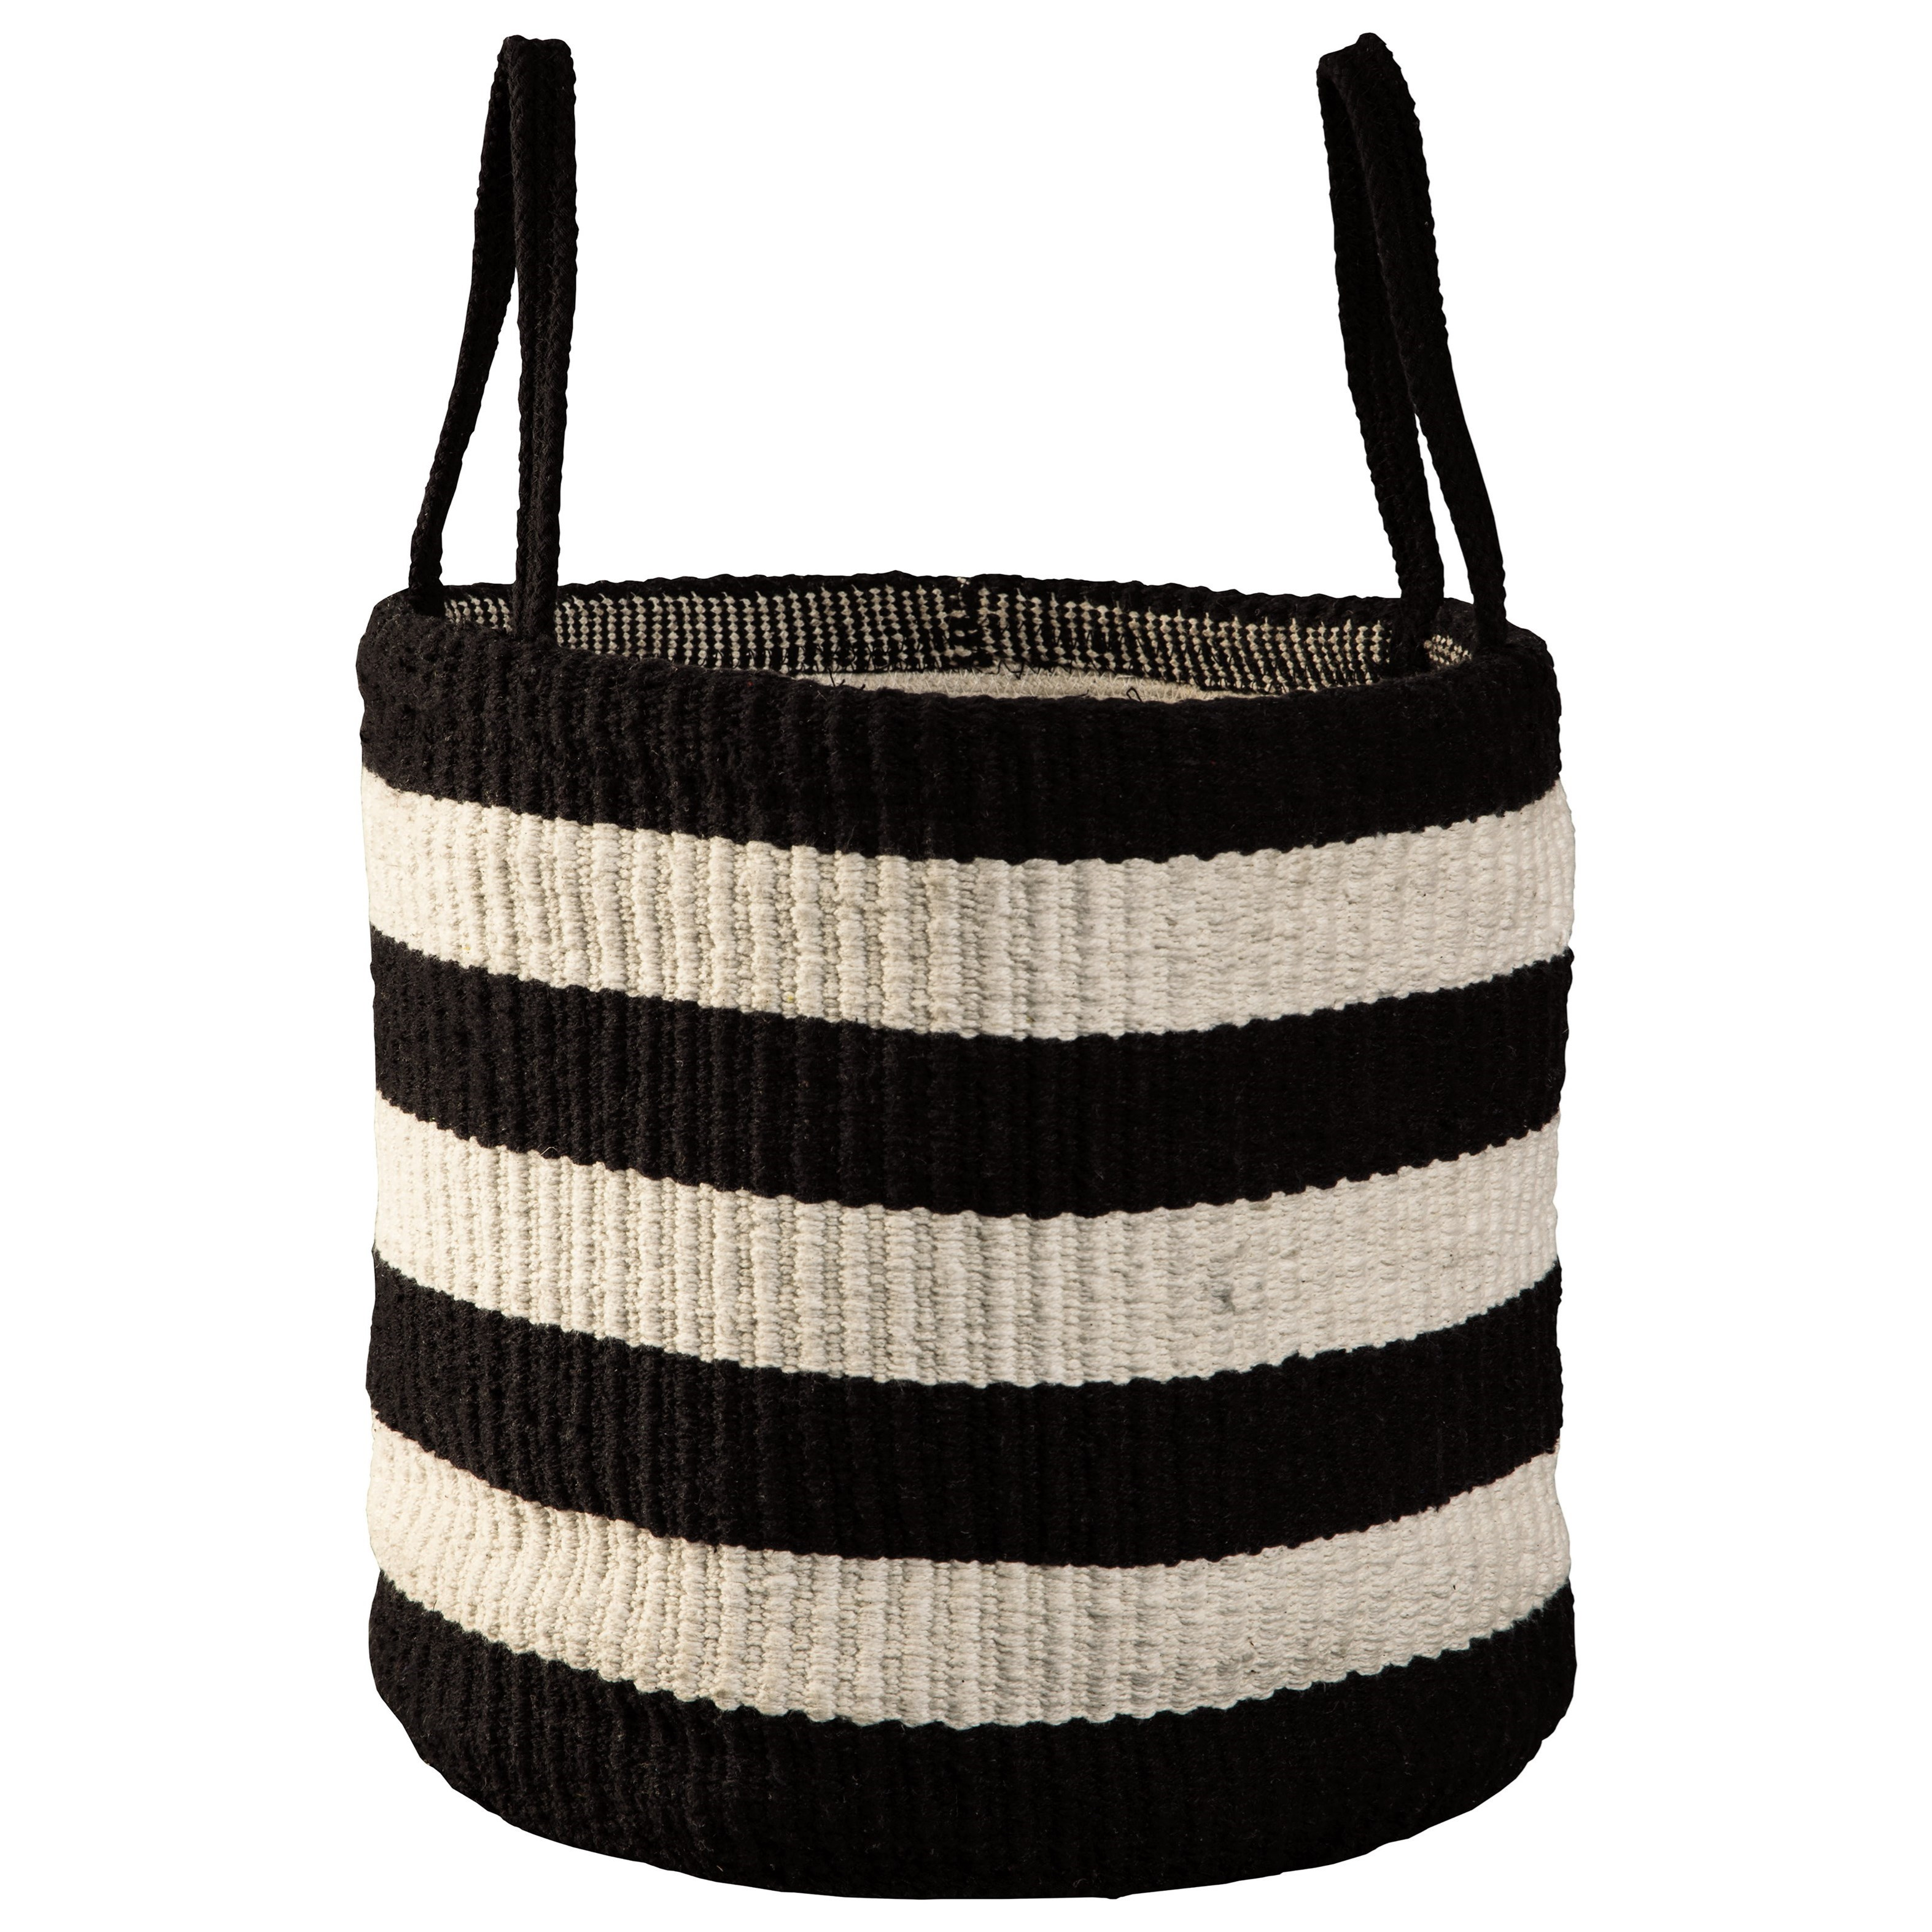 Edgerton Black/White Basket